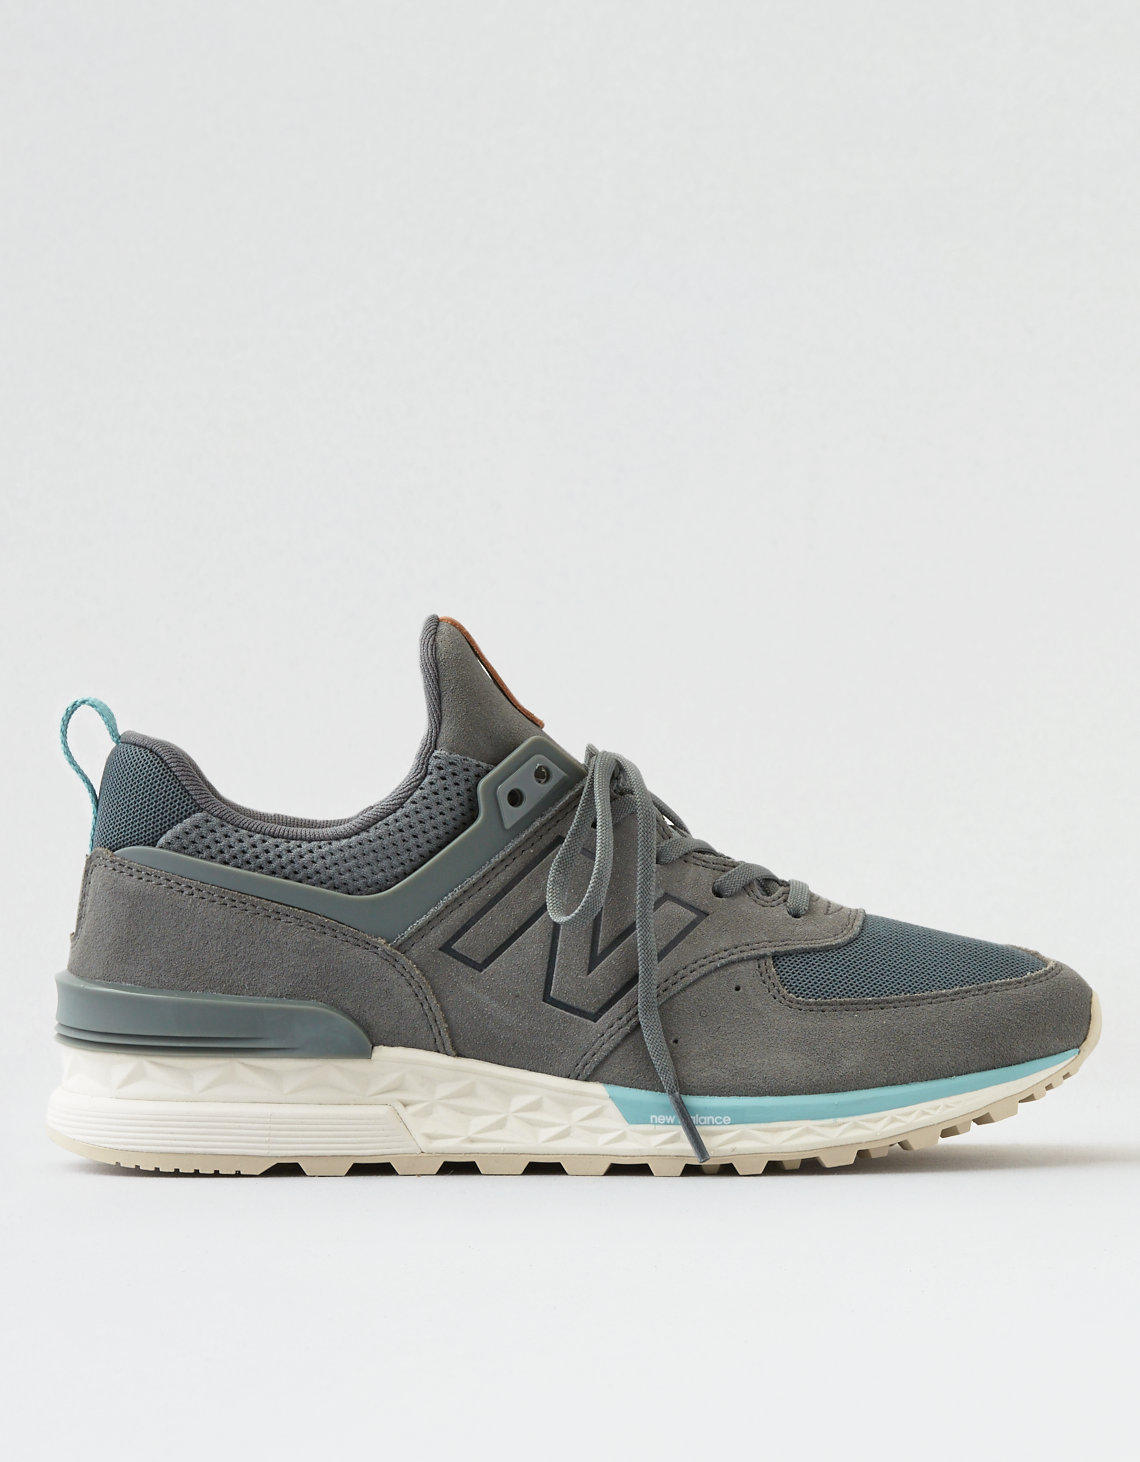 quality design c3885 ace14 New Balance 574 Sport Sneaker. Placeholder image. Product Image